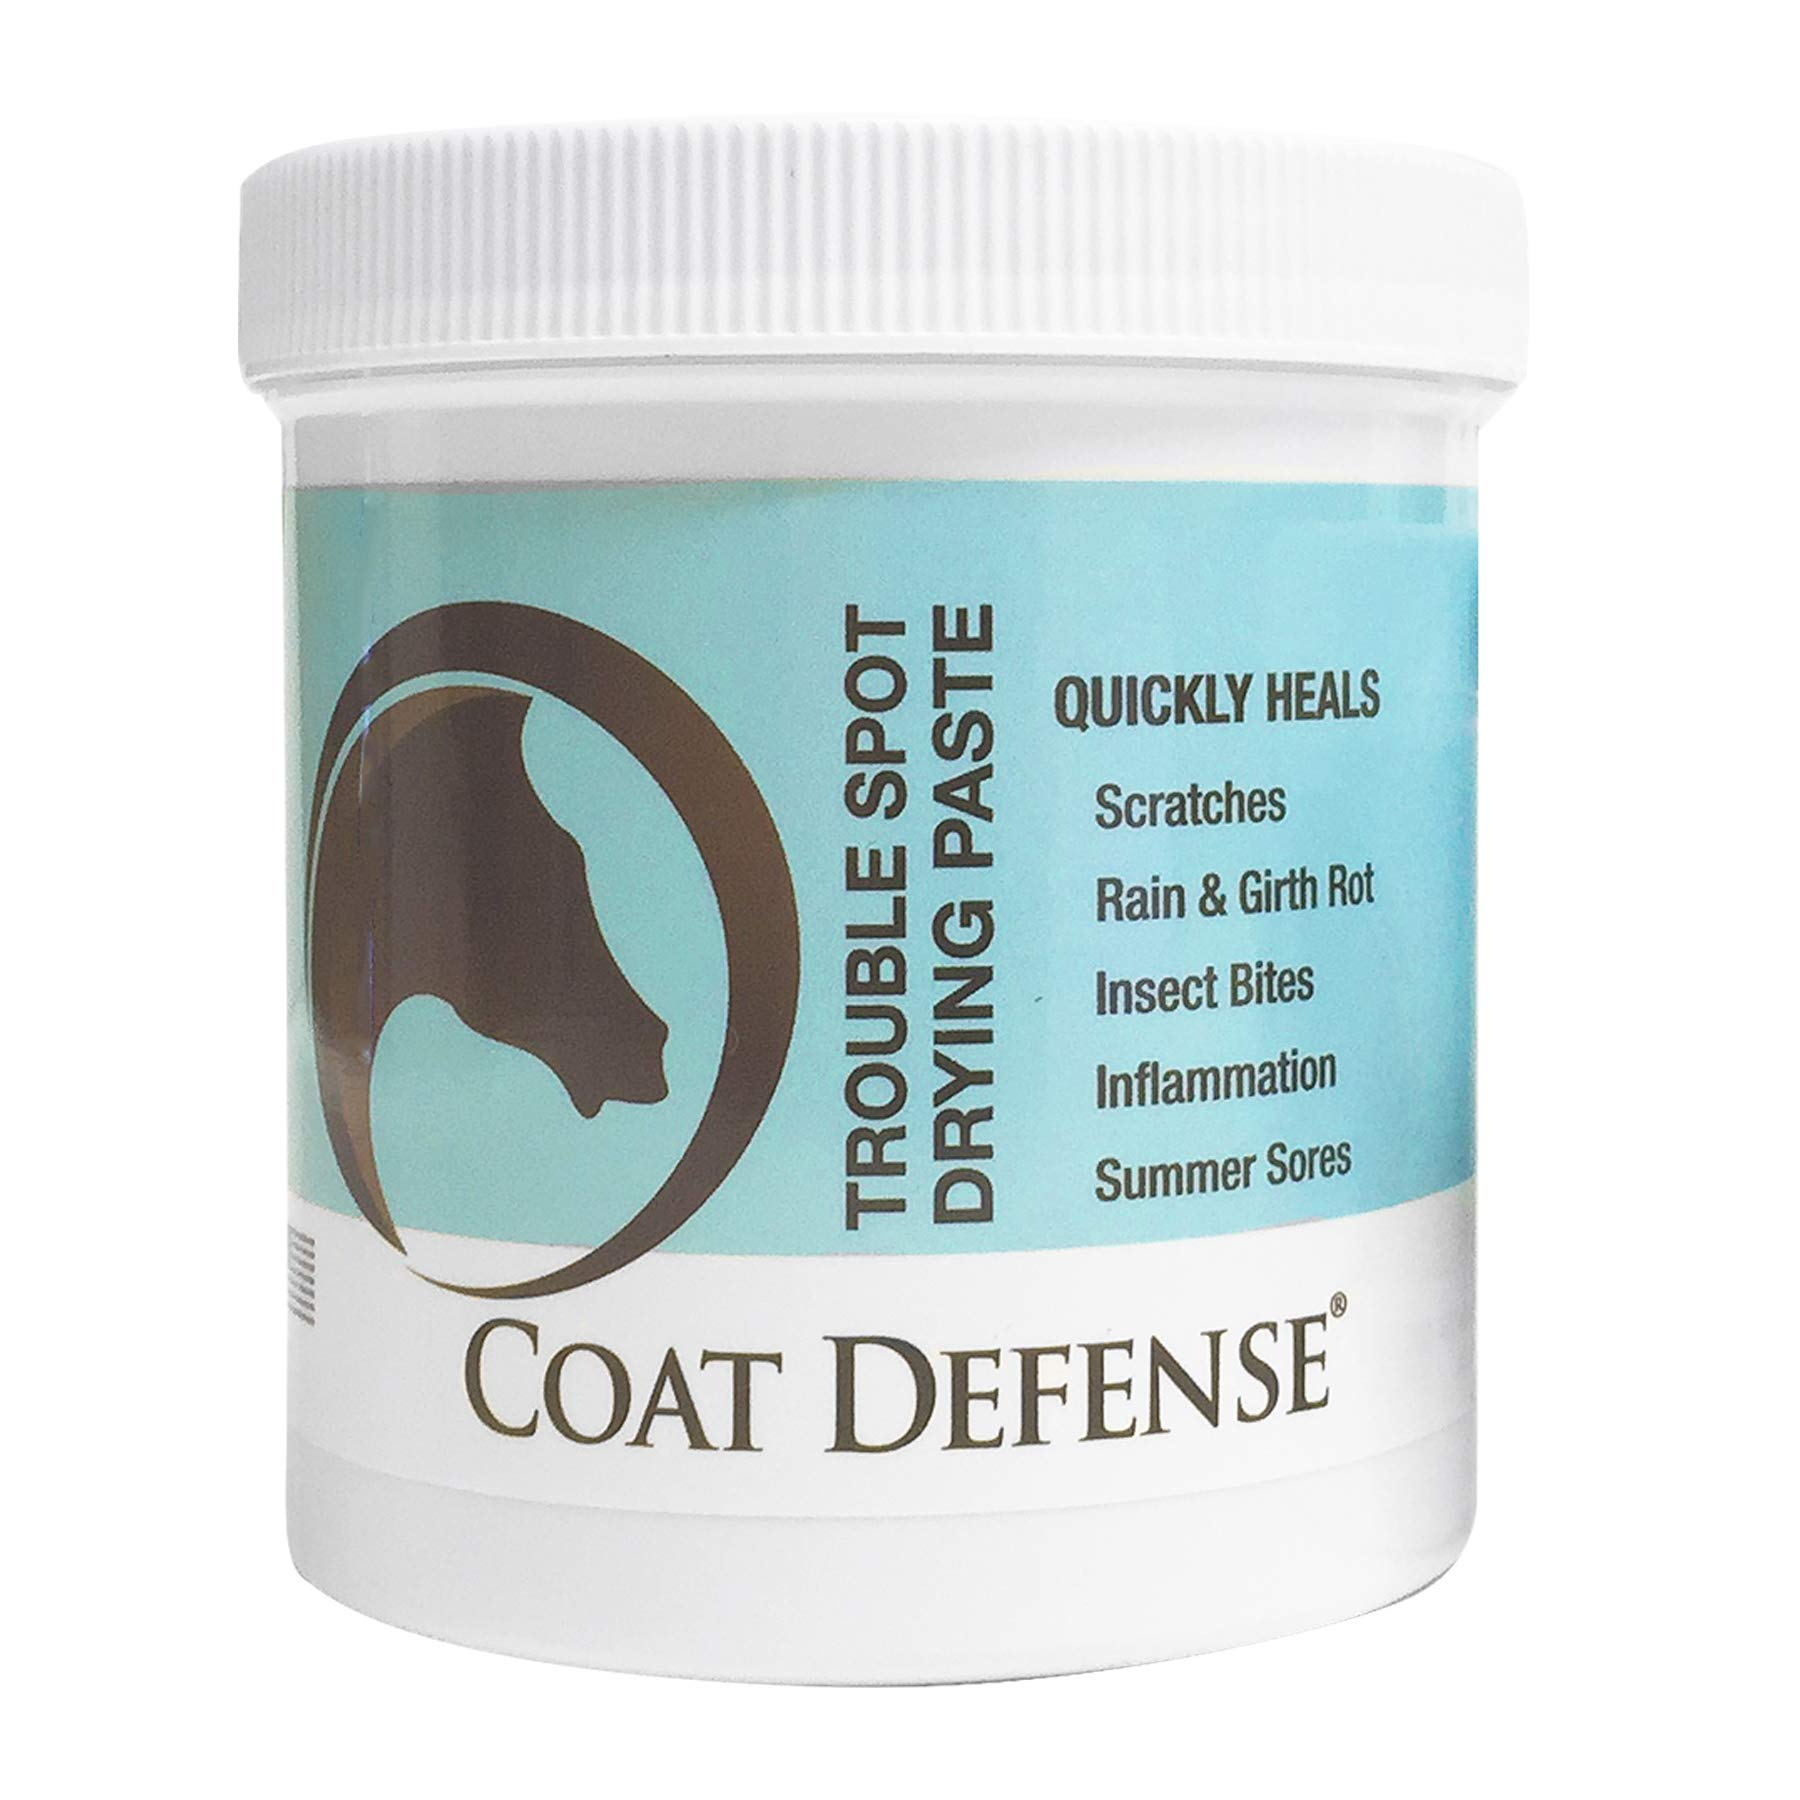 Coat Defense Drying Paste for Horses. Treat Summer Sores, Sweet Itch, Mud Fever, Scratches, Rain Rot, Girth Rot, Proud Flesh, Insect Bites. Protects, Dries, Soothes. Safe. Talc-Free. 24 Ounce Jar.